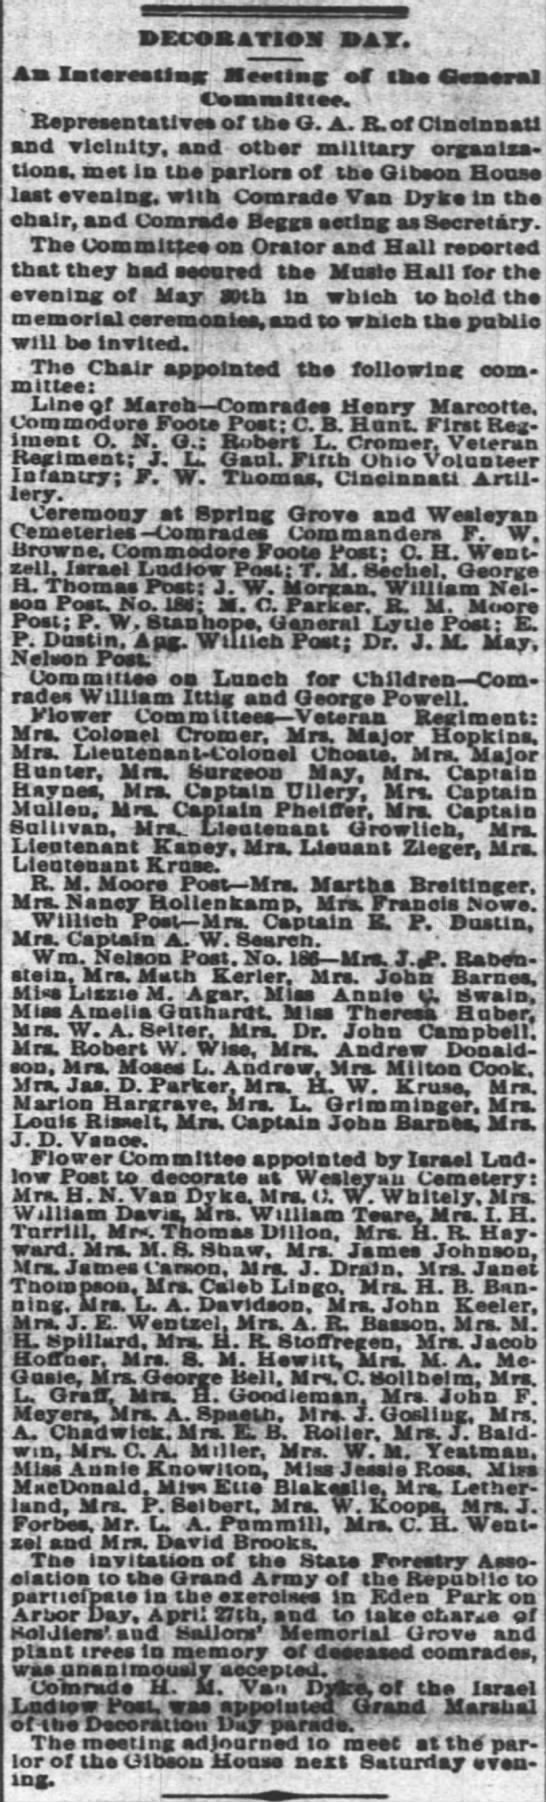 Marie involved in Decoration Day event 22 Apr 1883 as Mrs A R Basson